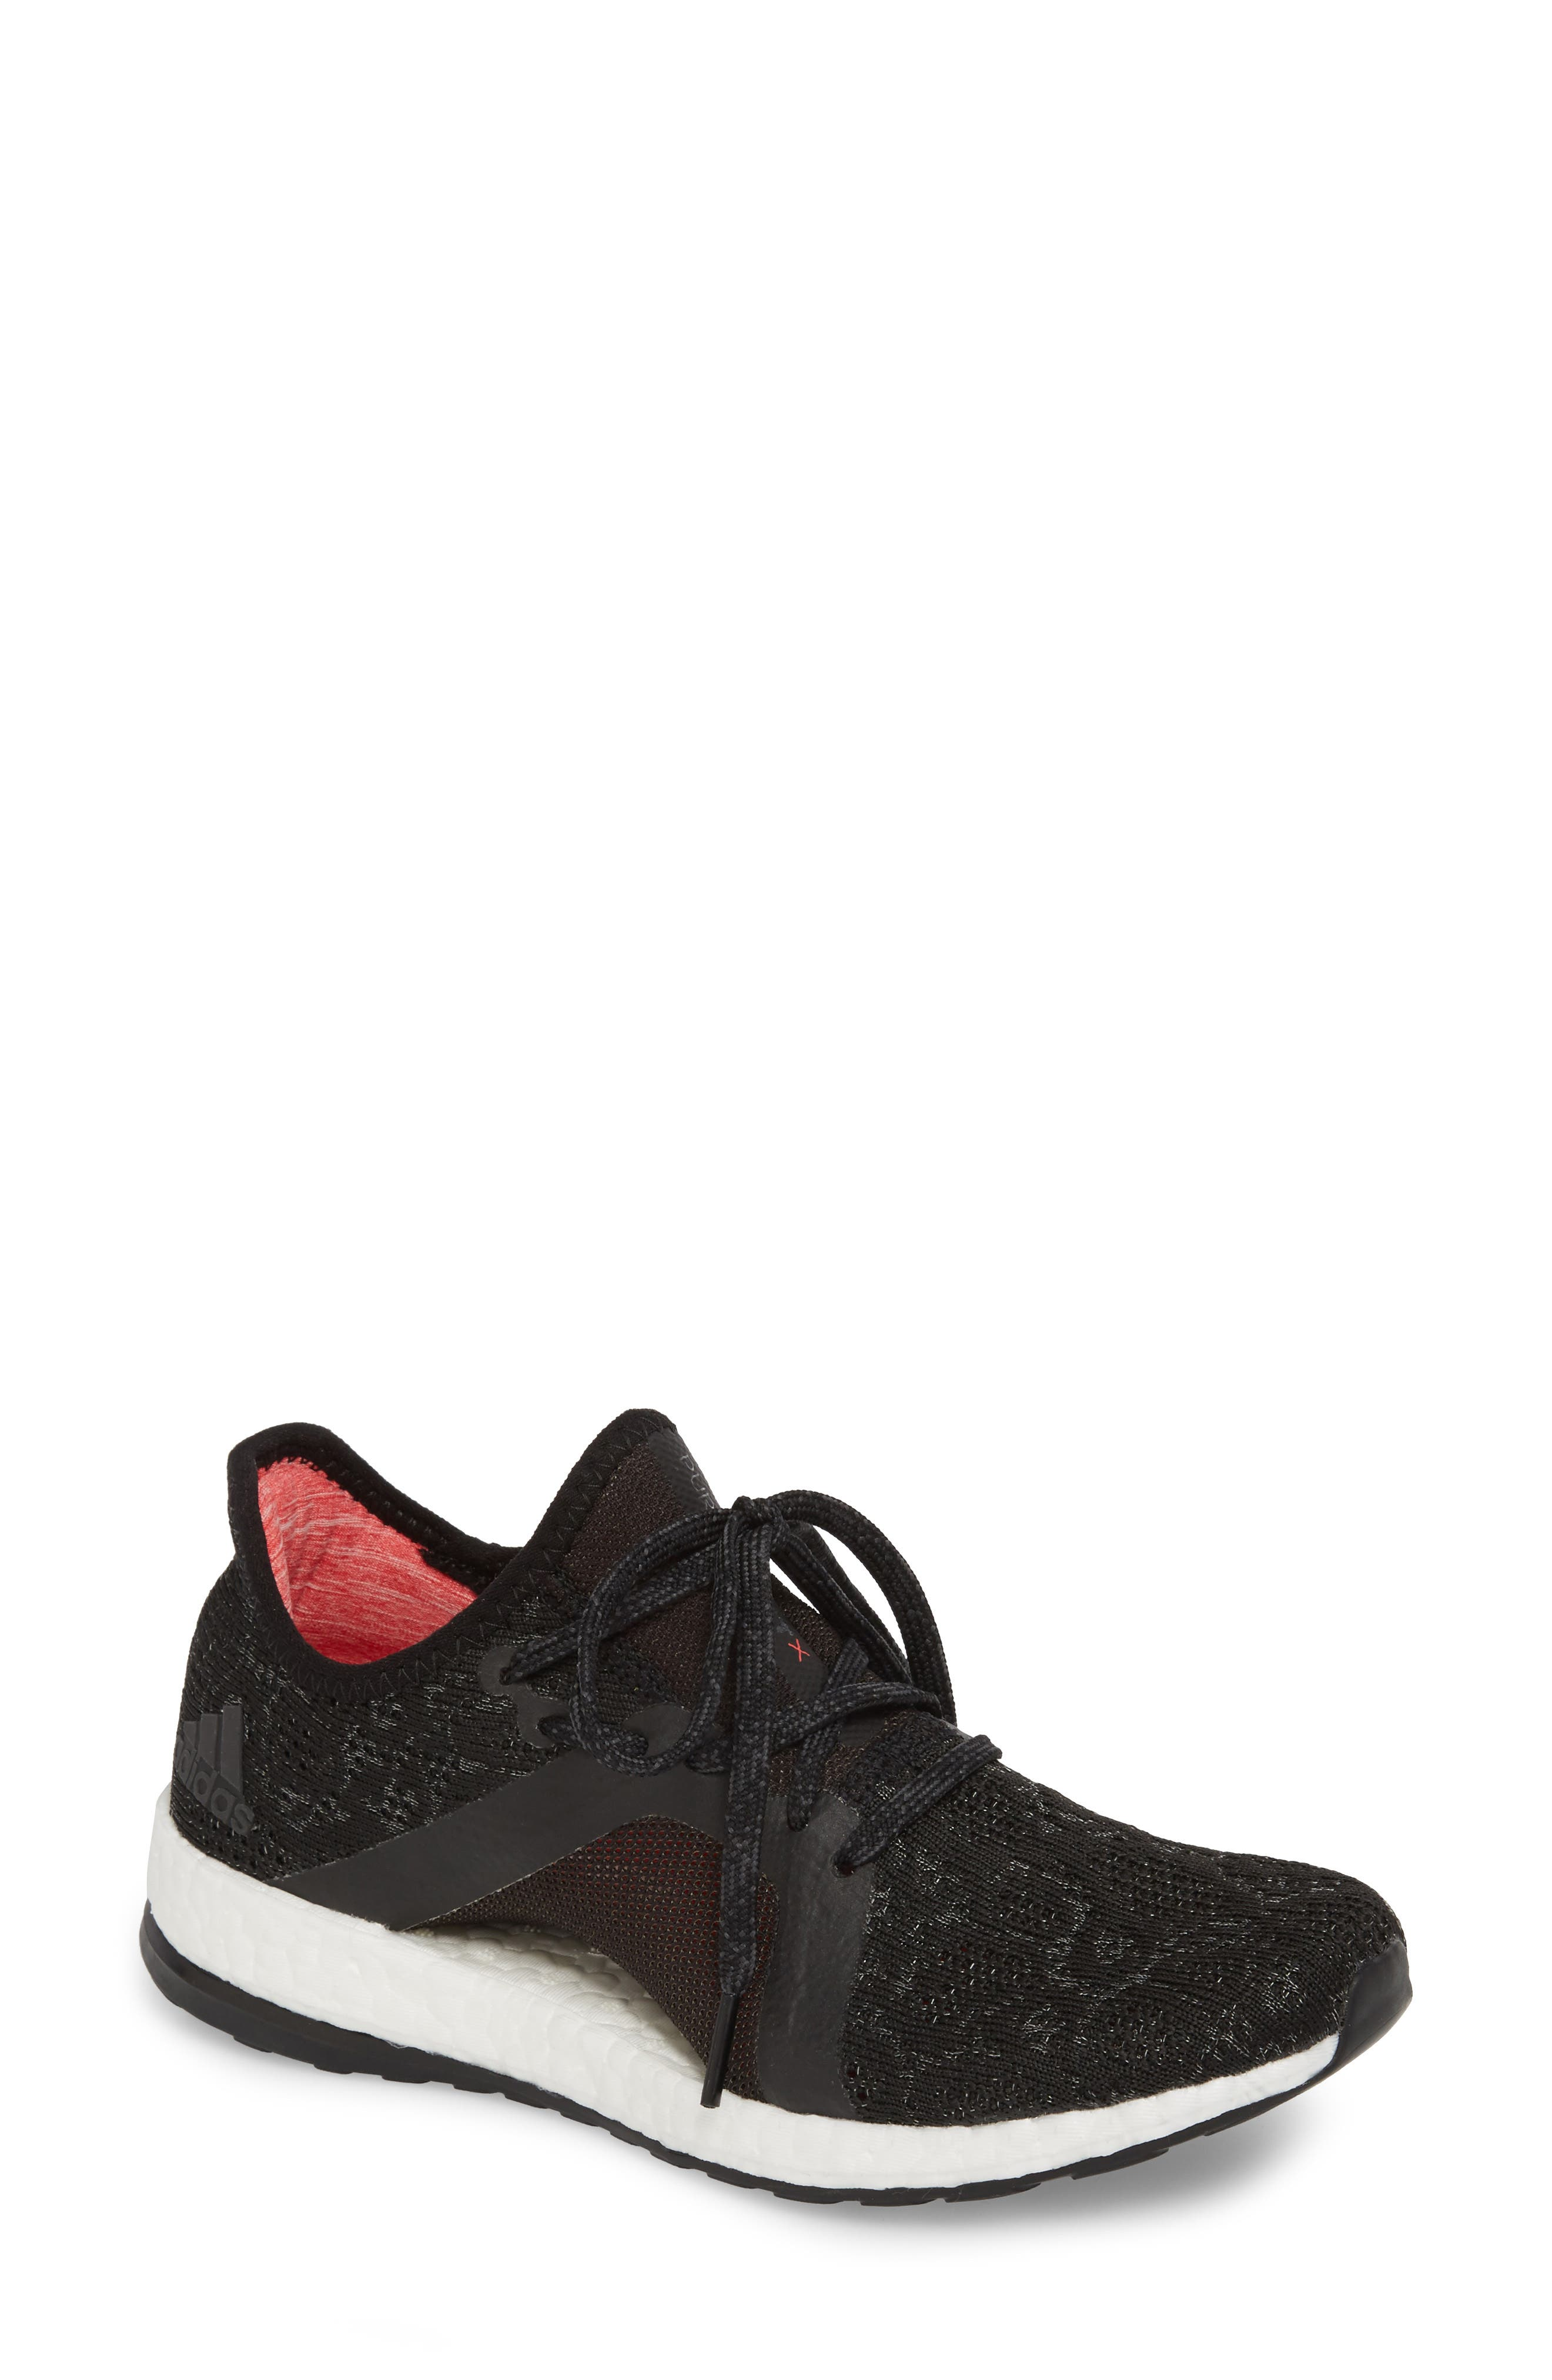 PureBoost X Element Knit Running Shoe, Main, color, 002